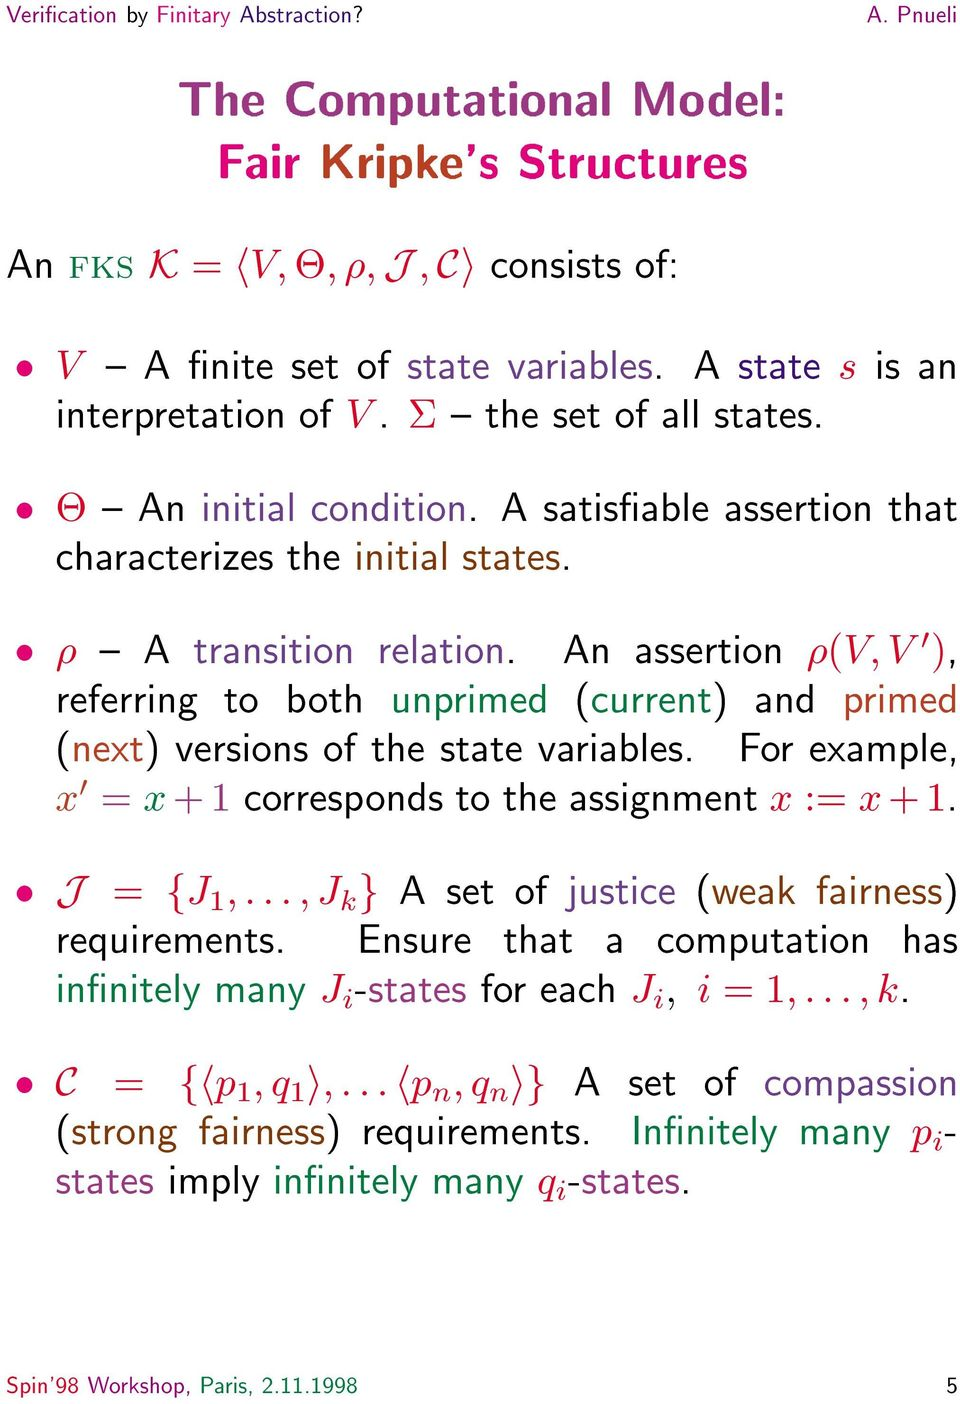 An assertion (V V 0 ), referring to both unprimed (current) and primed (next) versions of the state variables. For example, x 0 = x +1 corresponds to the assignment x := x +1.